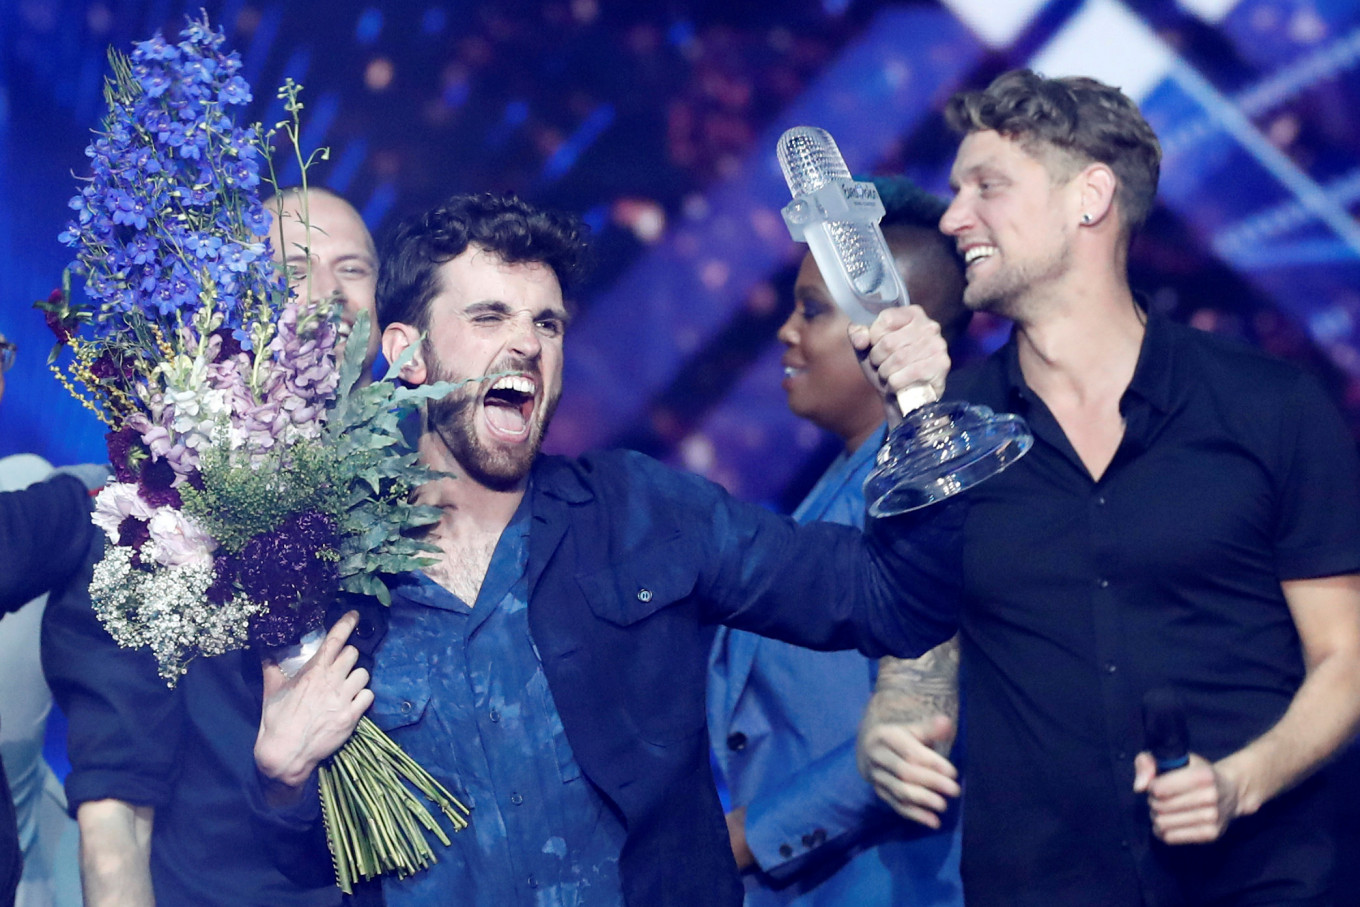 Dutch port city of Rotterdam to host 2020 Eurovision Song Contest